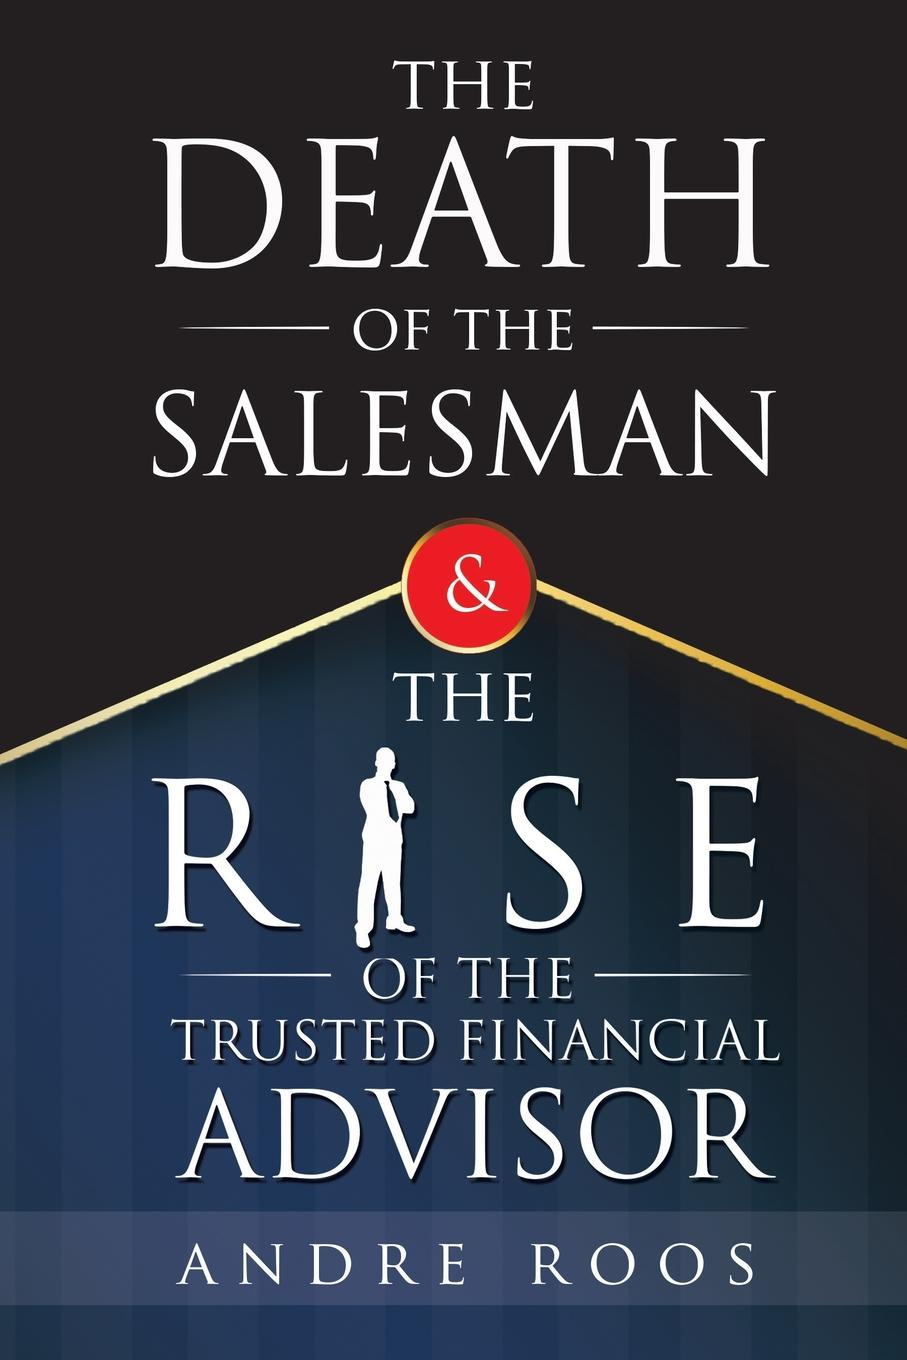 The Death of the Salesman and the Rise of the Trusted Financial Advisor As a salesperson, youve been taught to persuade, pitch products, read...